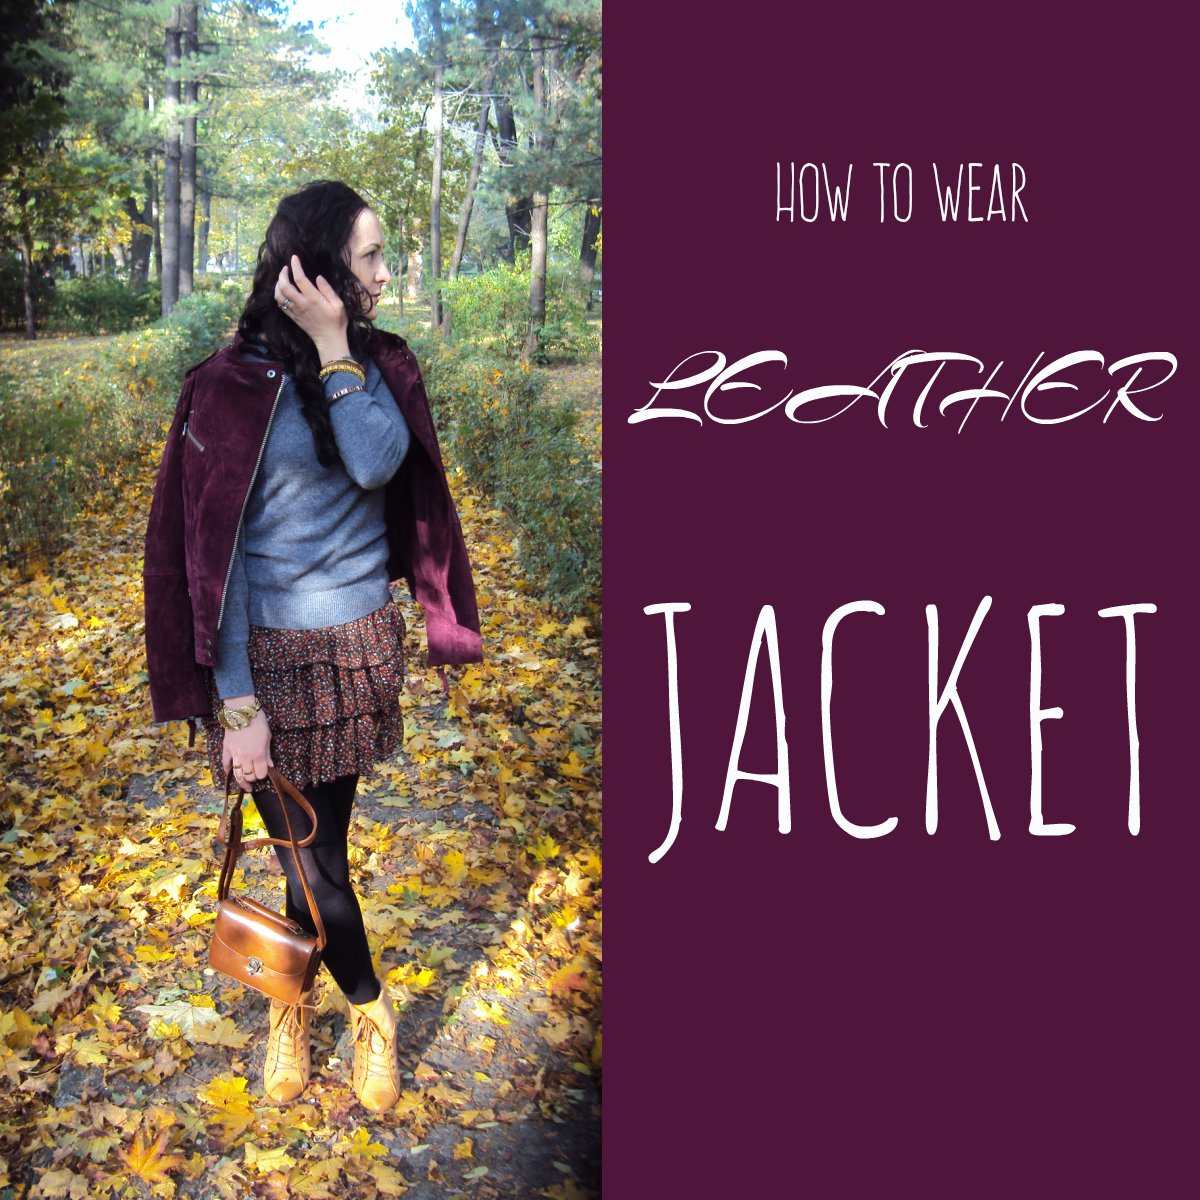 How to wear leather jackets